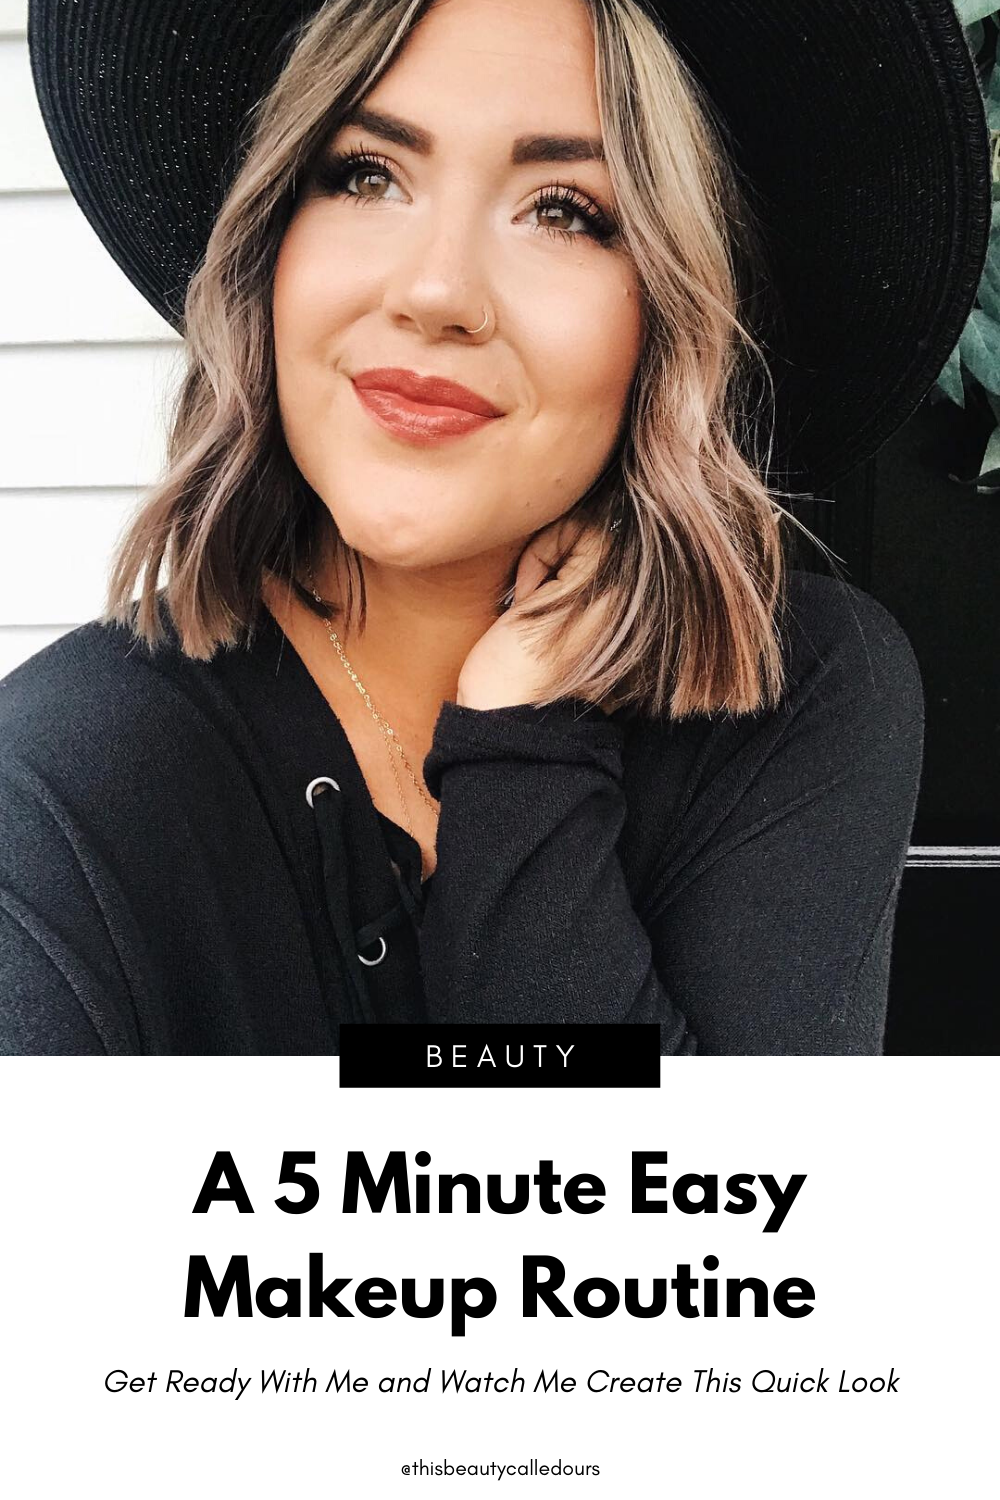 My 5 Minute Makeup Routine in 2020 (With images) Makeup